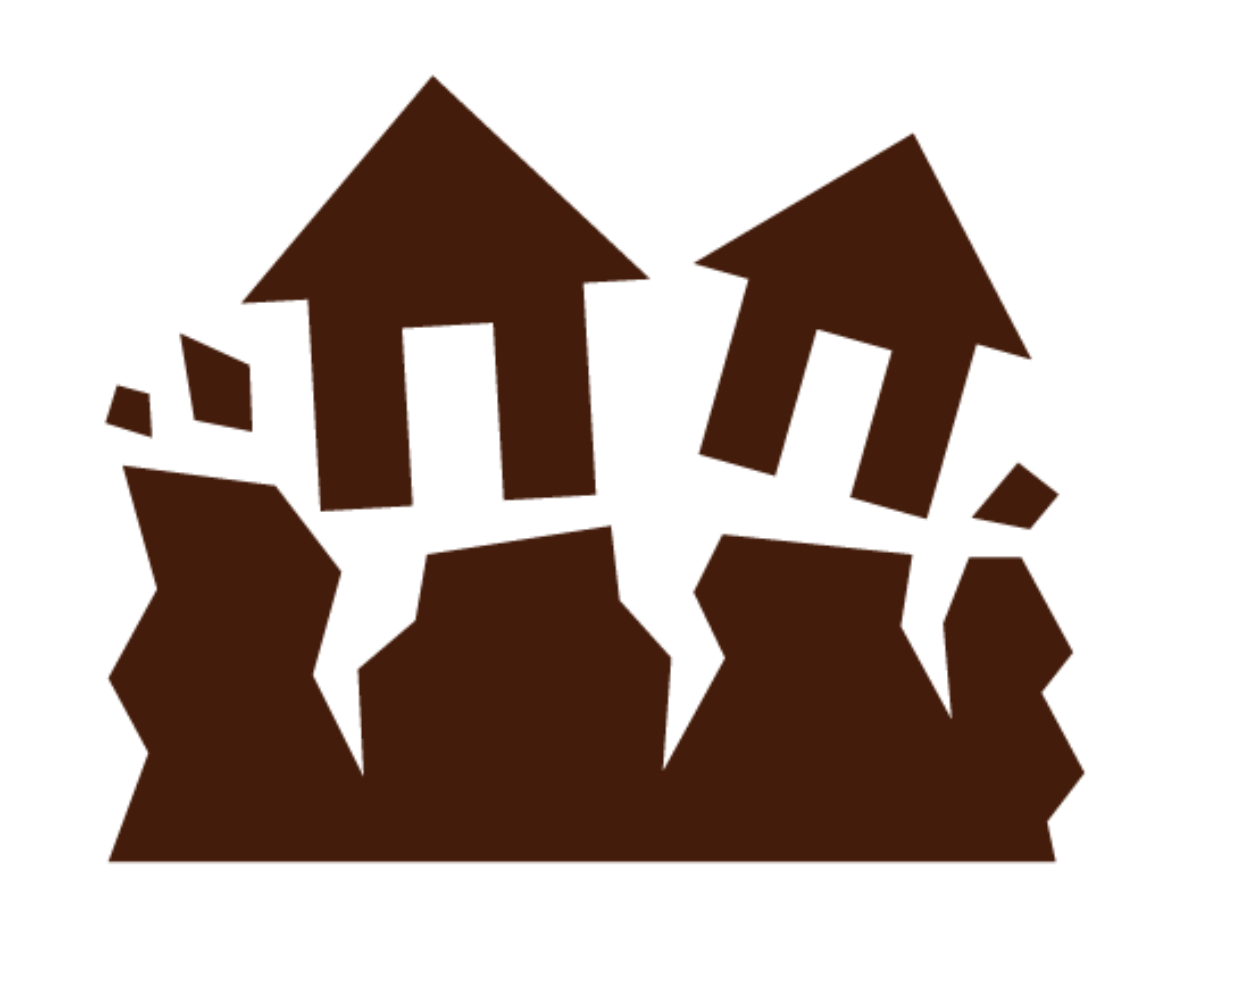 Earthquake clipart issue global. Natural disaster icon house